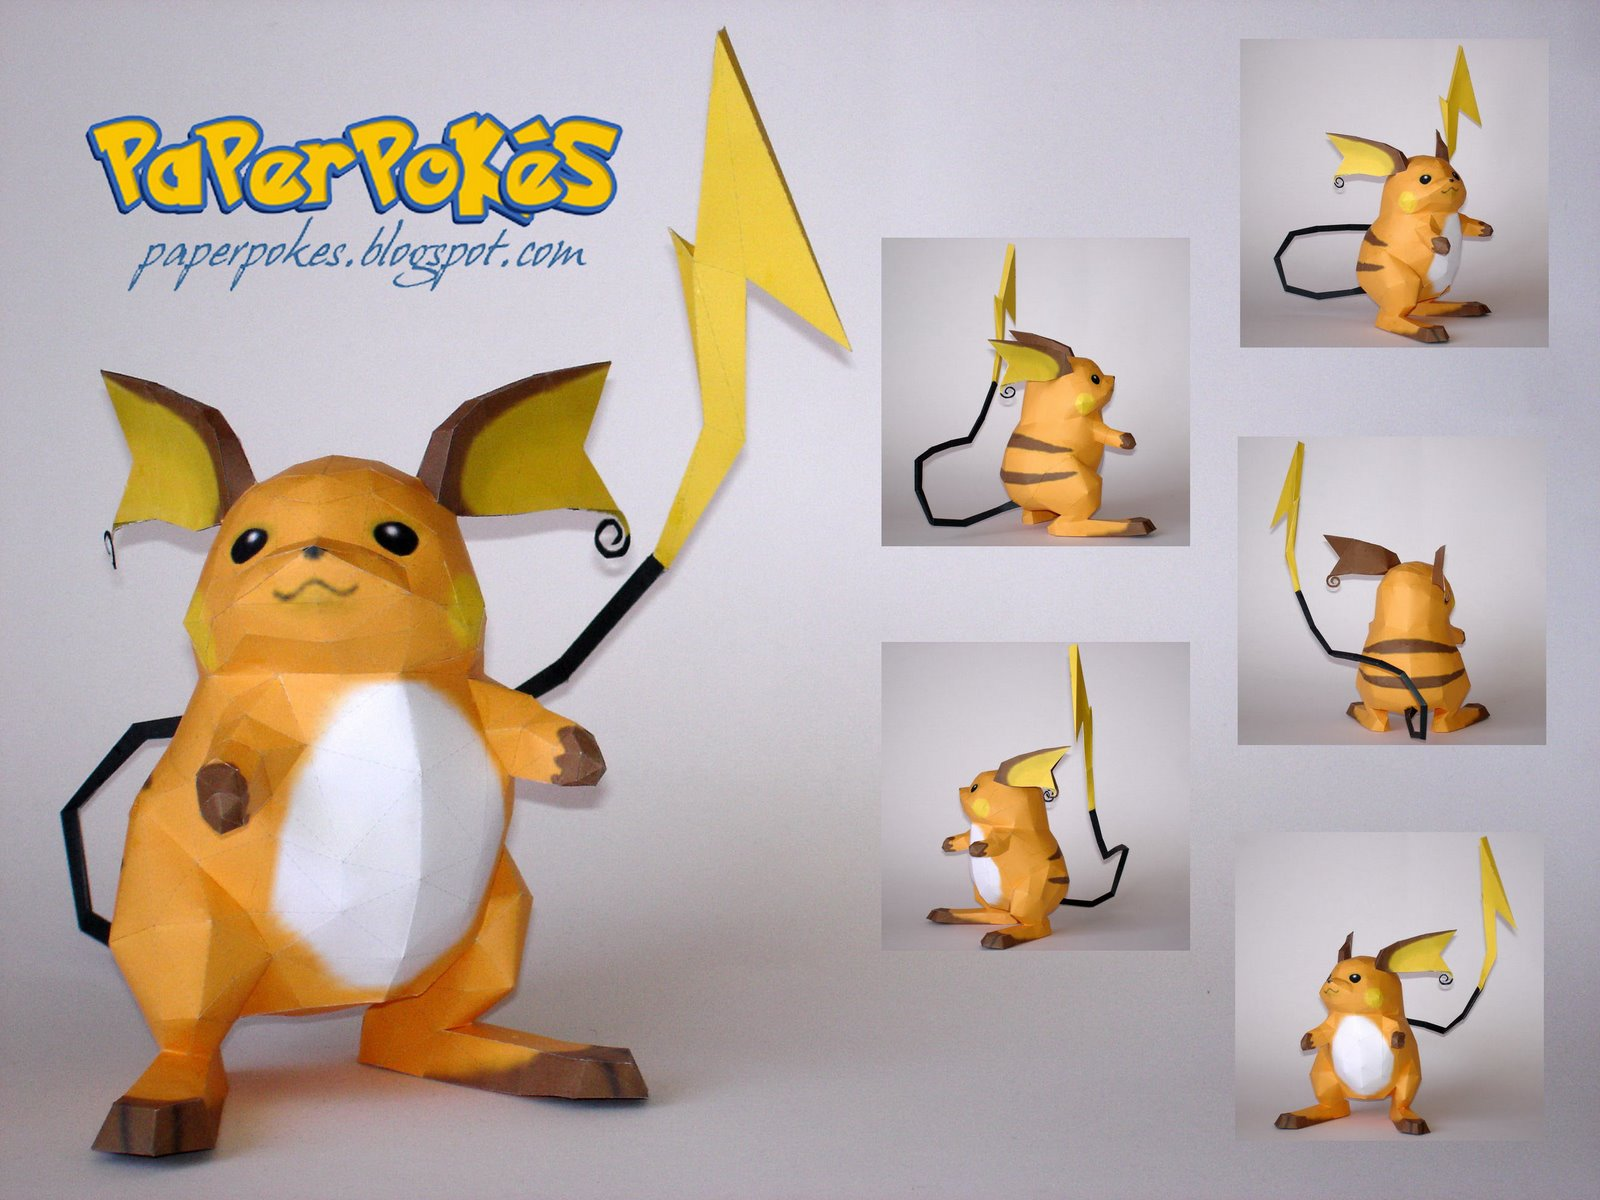 Pokemon papercraft - Pokemon Voltage - 3DJuegos - photo#18